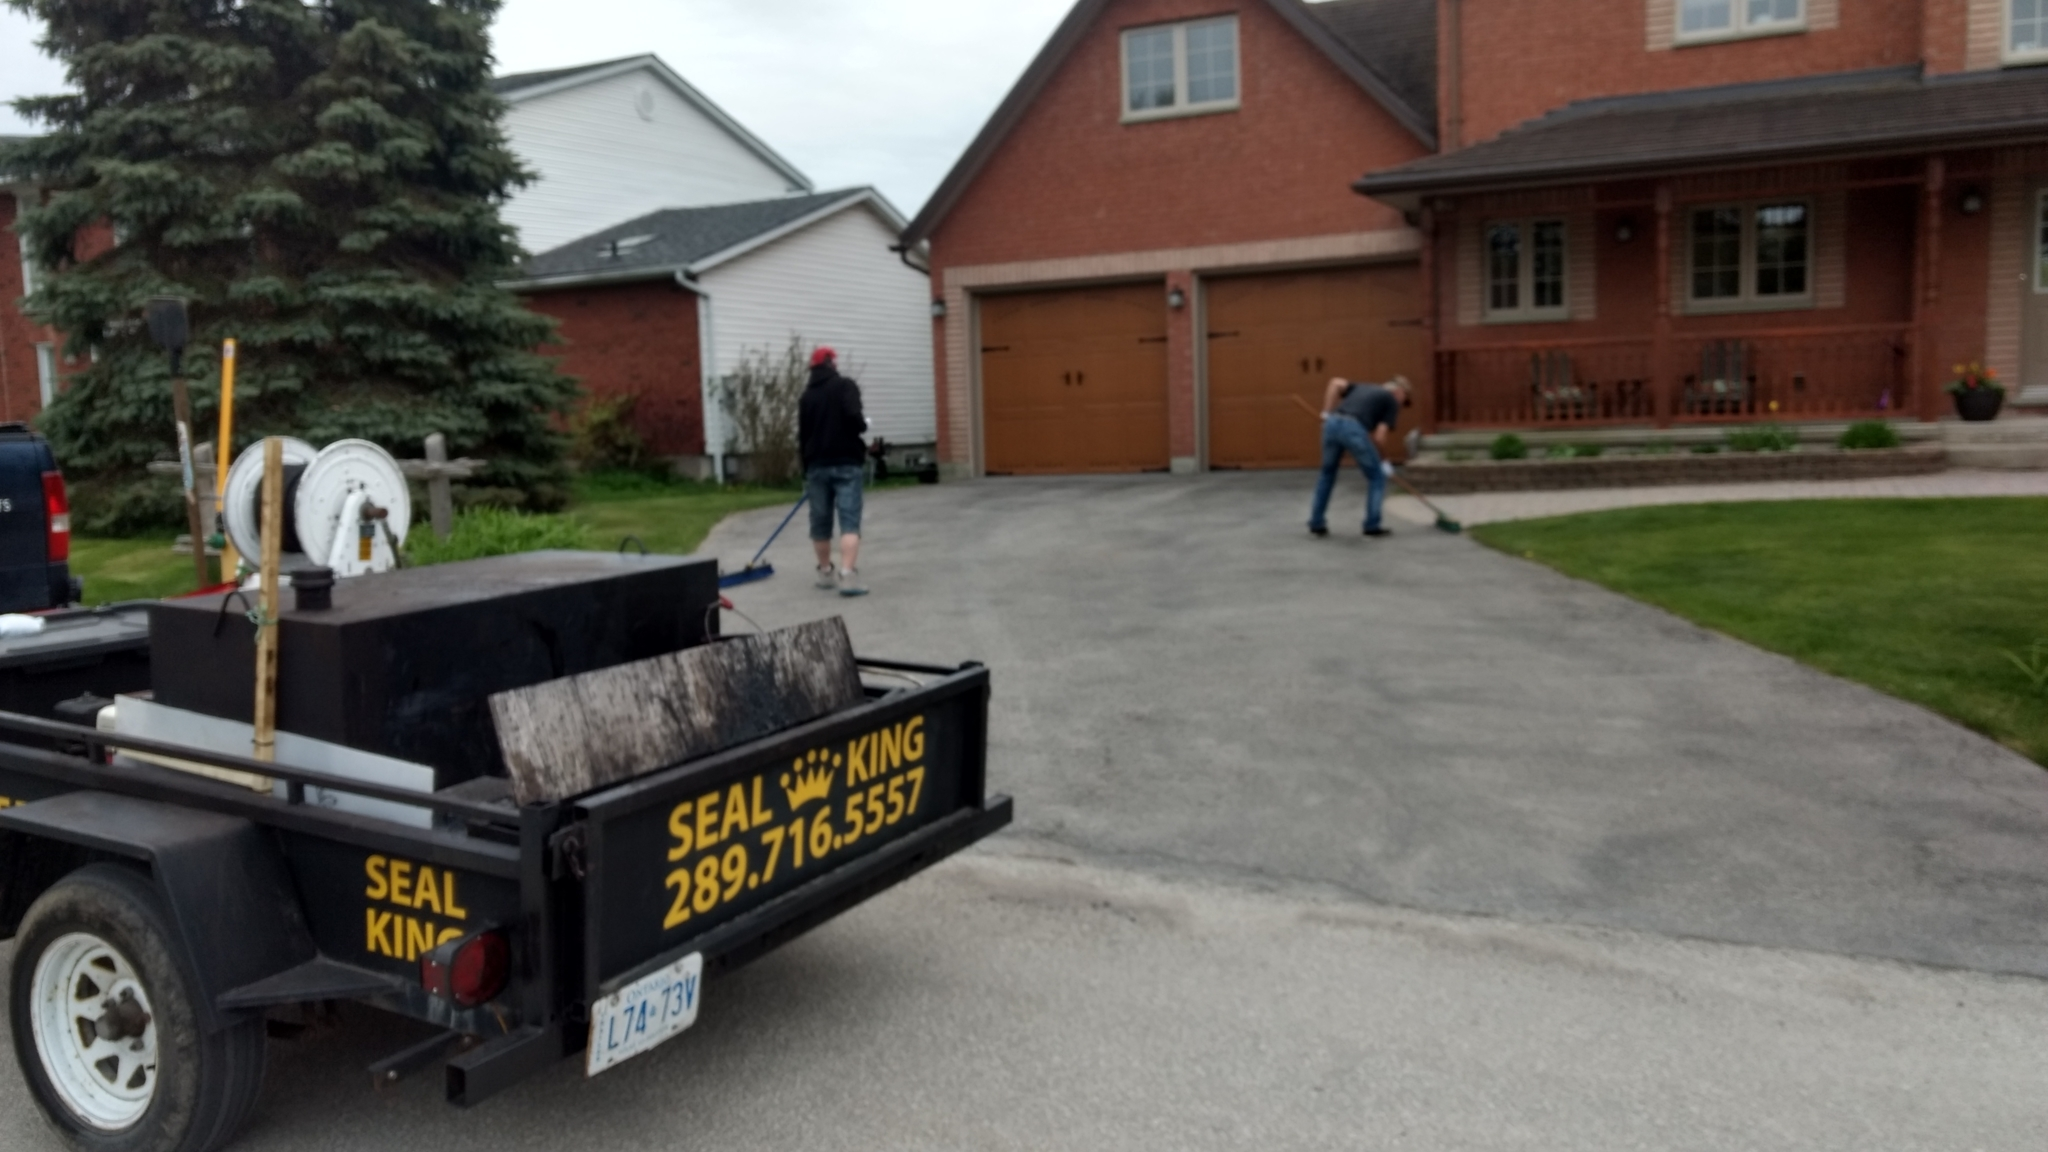 Cleaning and prepping the driveway Asphalt Seal King Bradford (289)716-5557